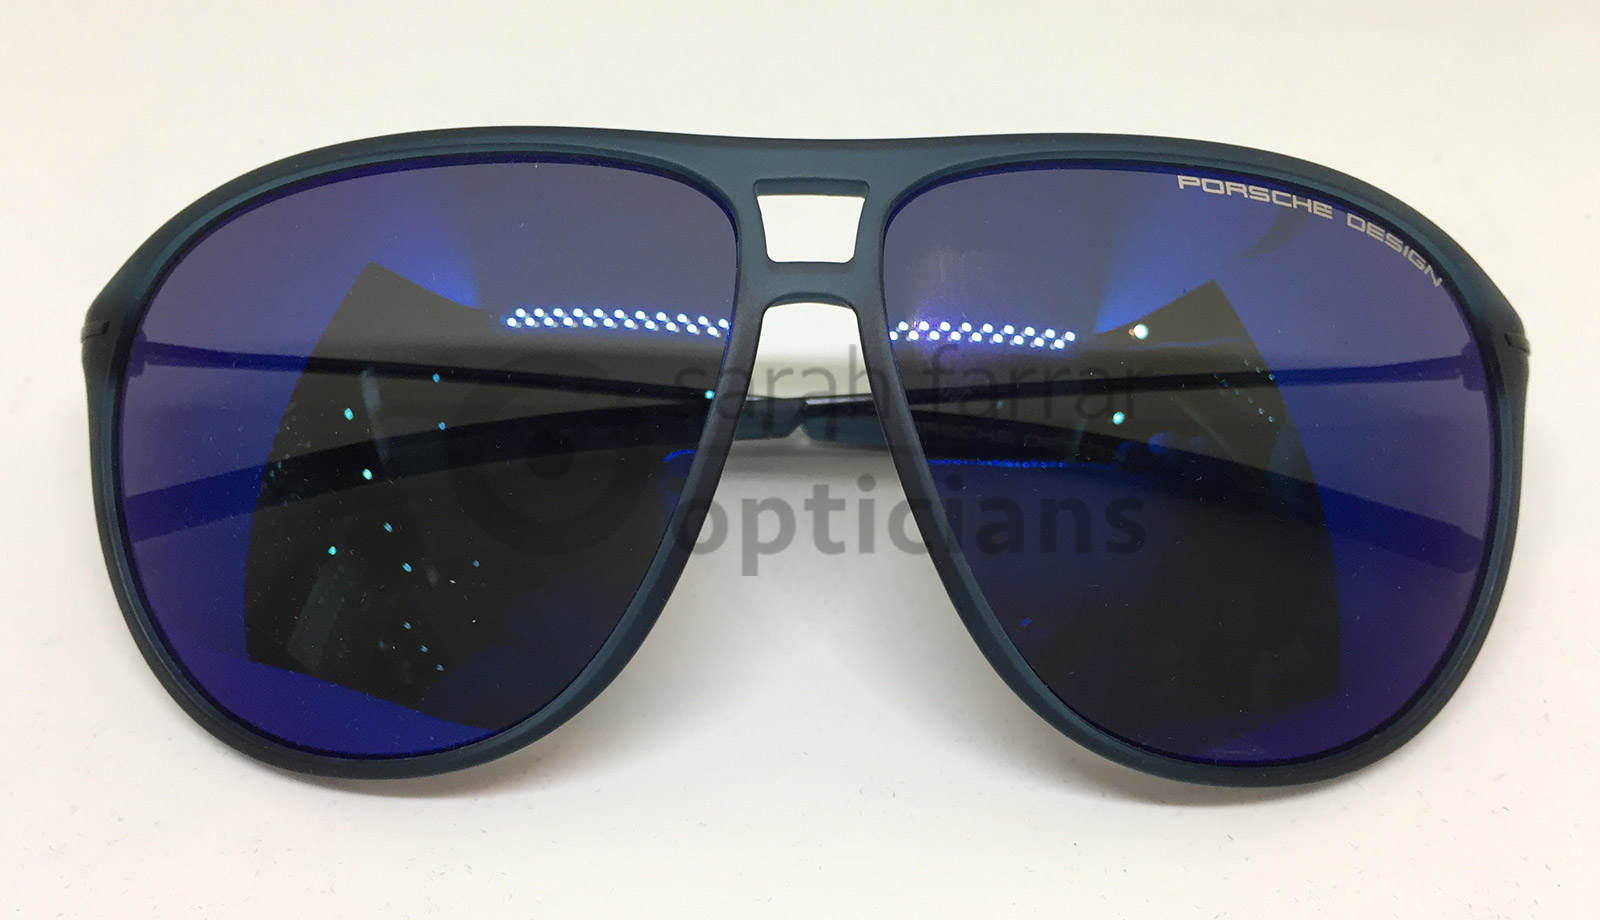 Porsche Design P8635 Sunglasses Sarah Farrar Opticians